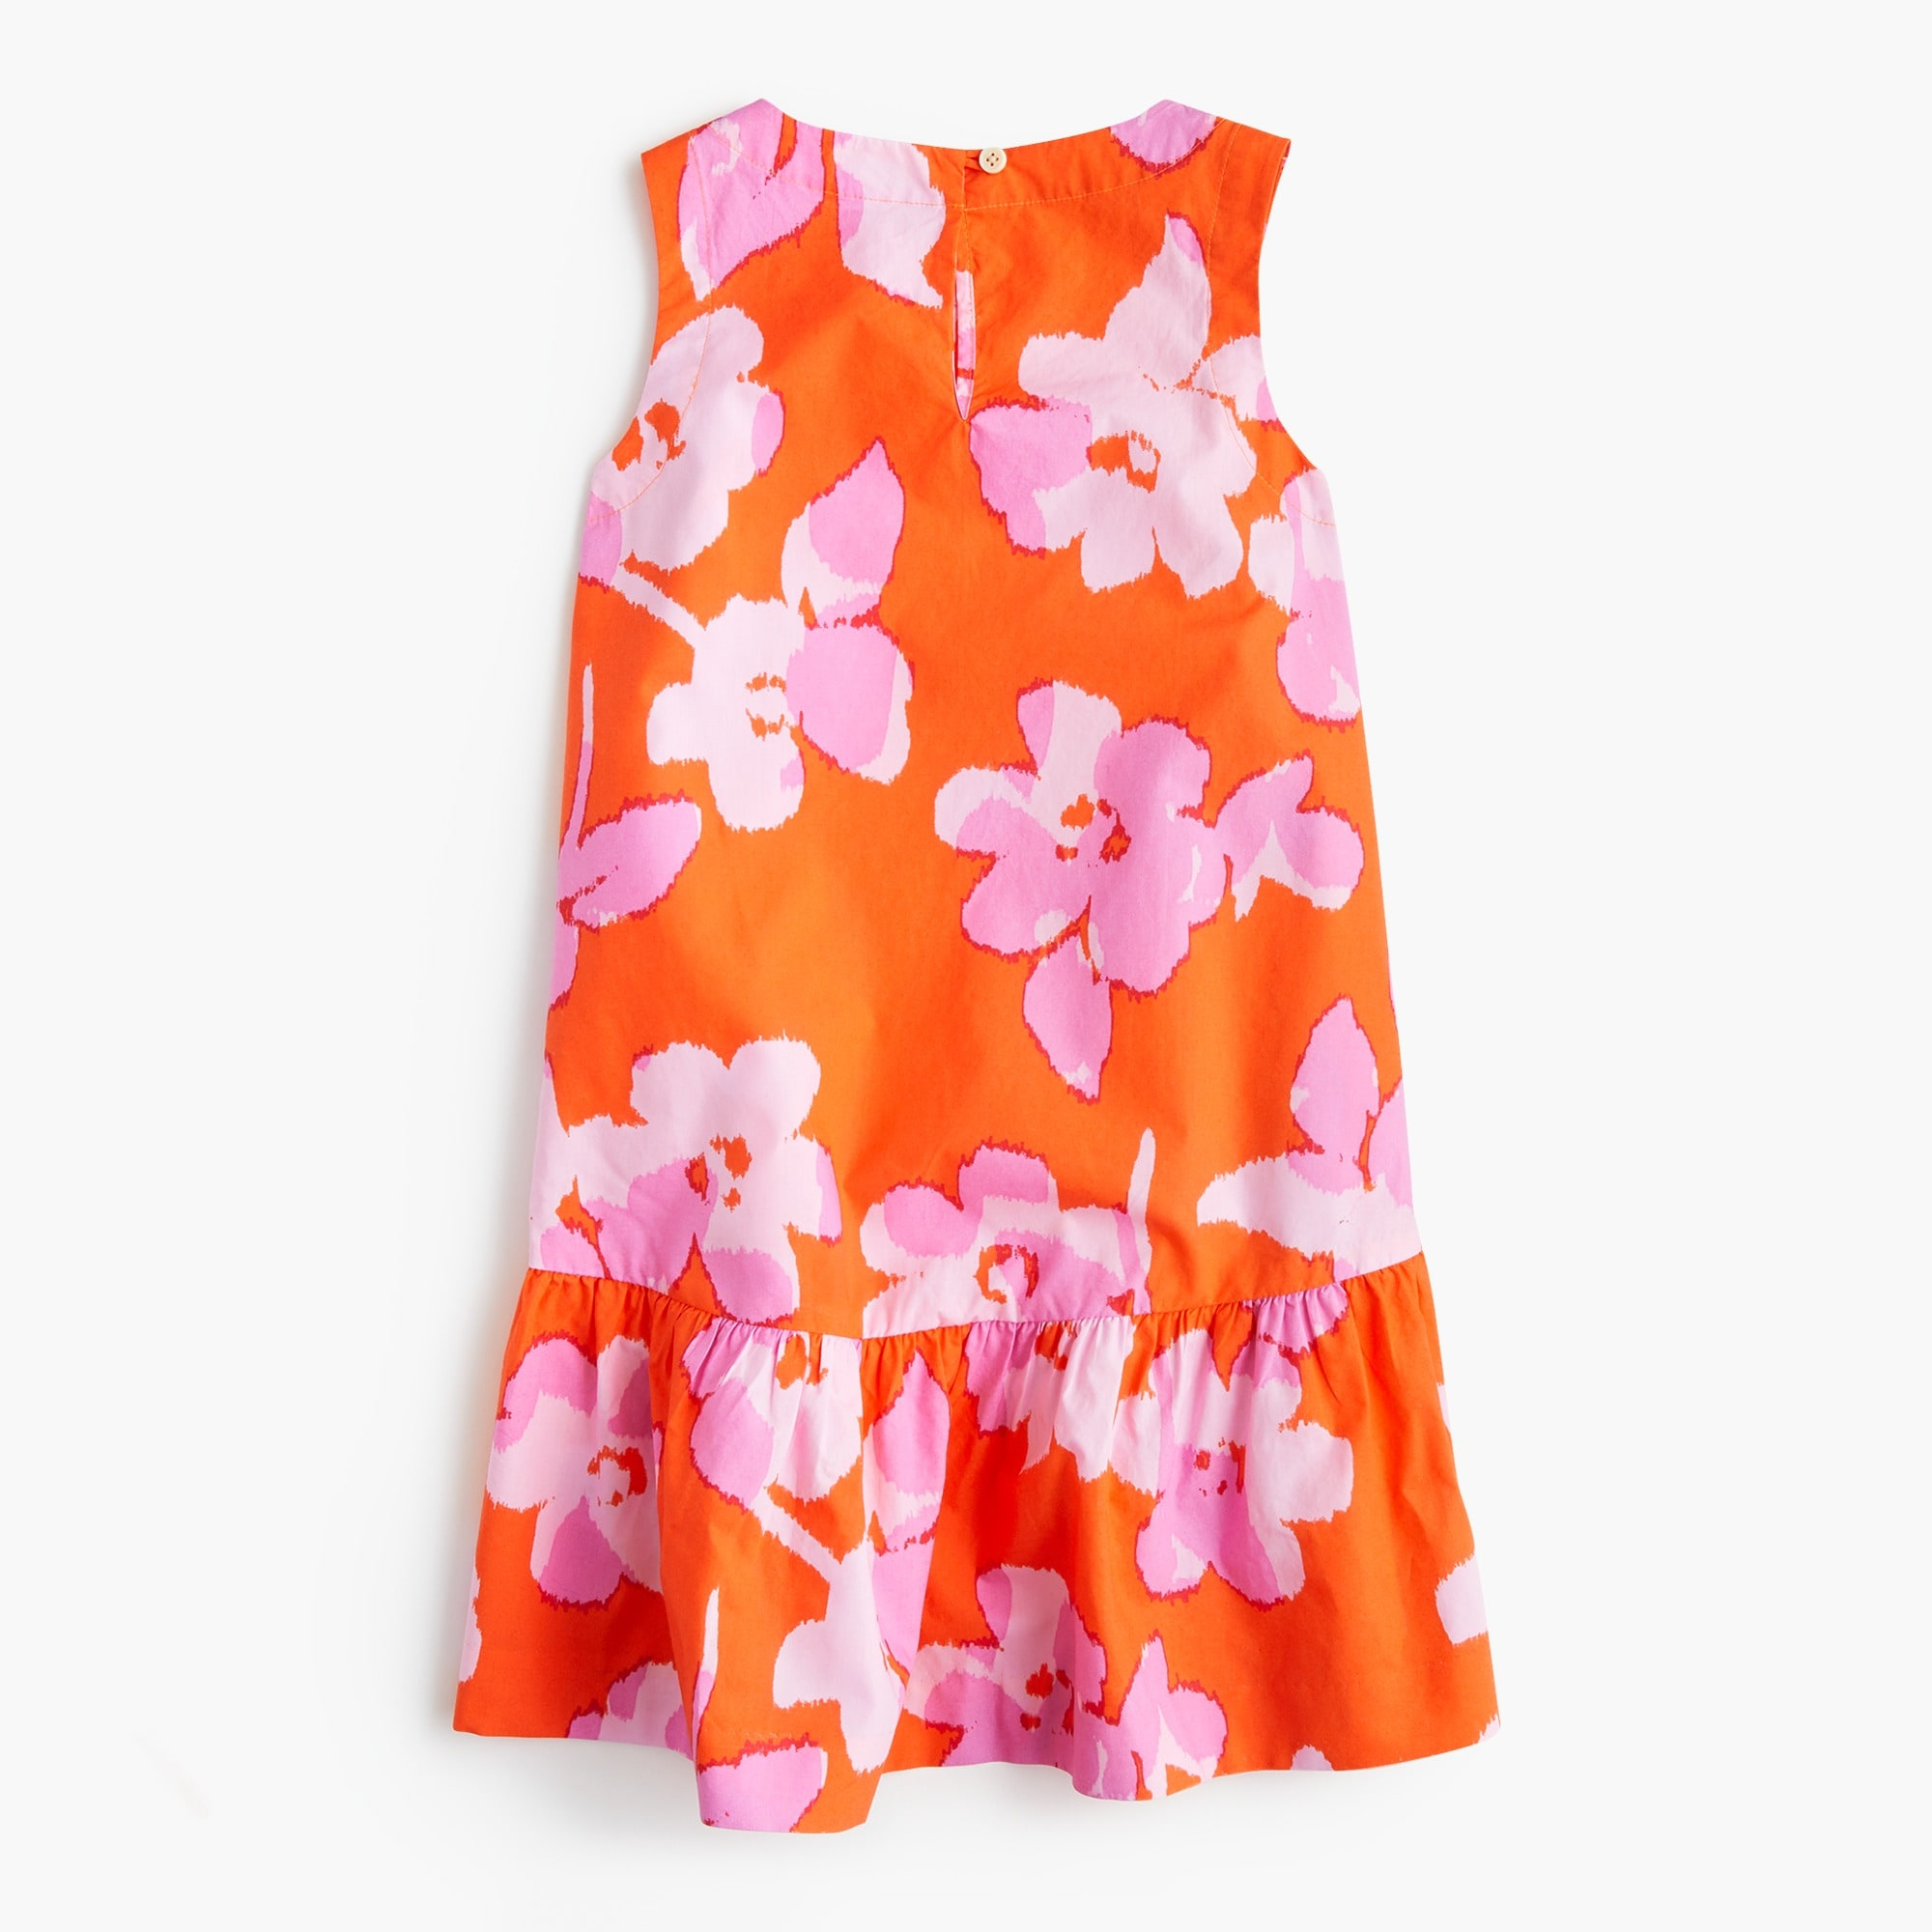 girls' drop-waist dress in floral - girls' casual dresses